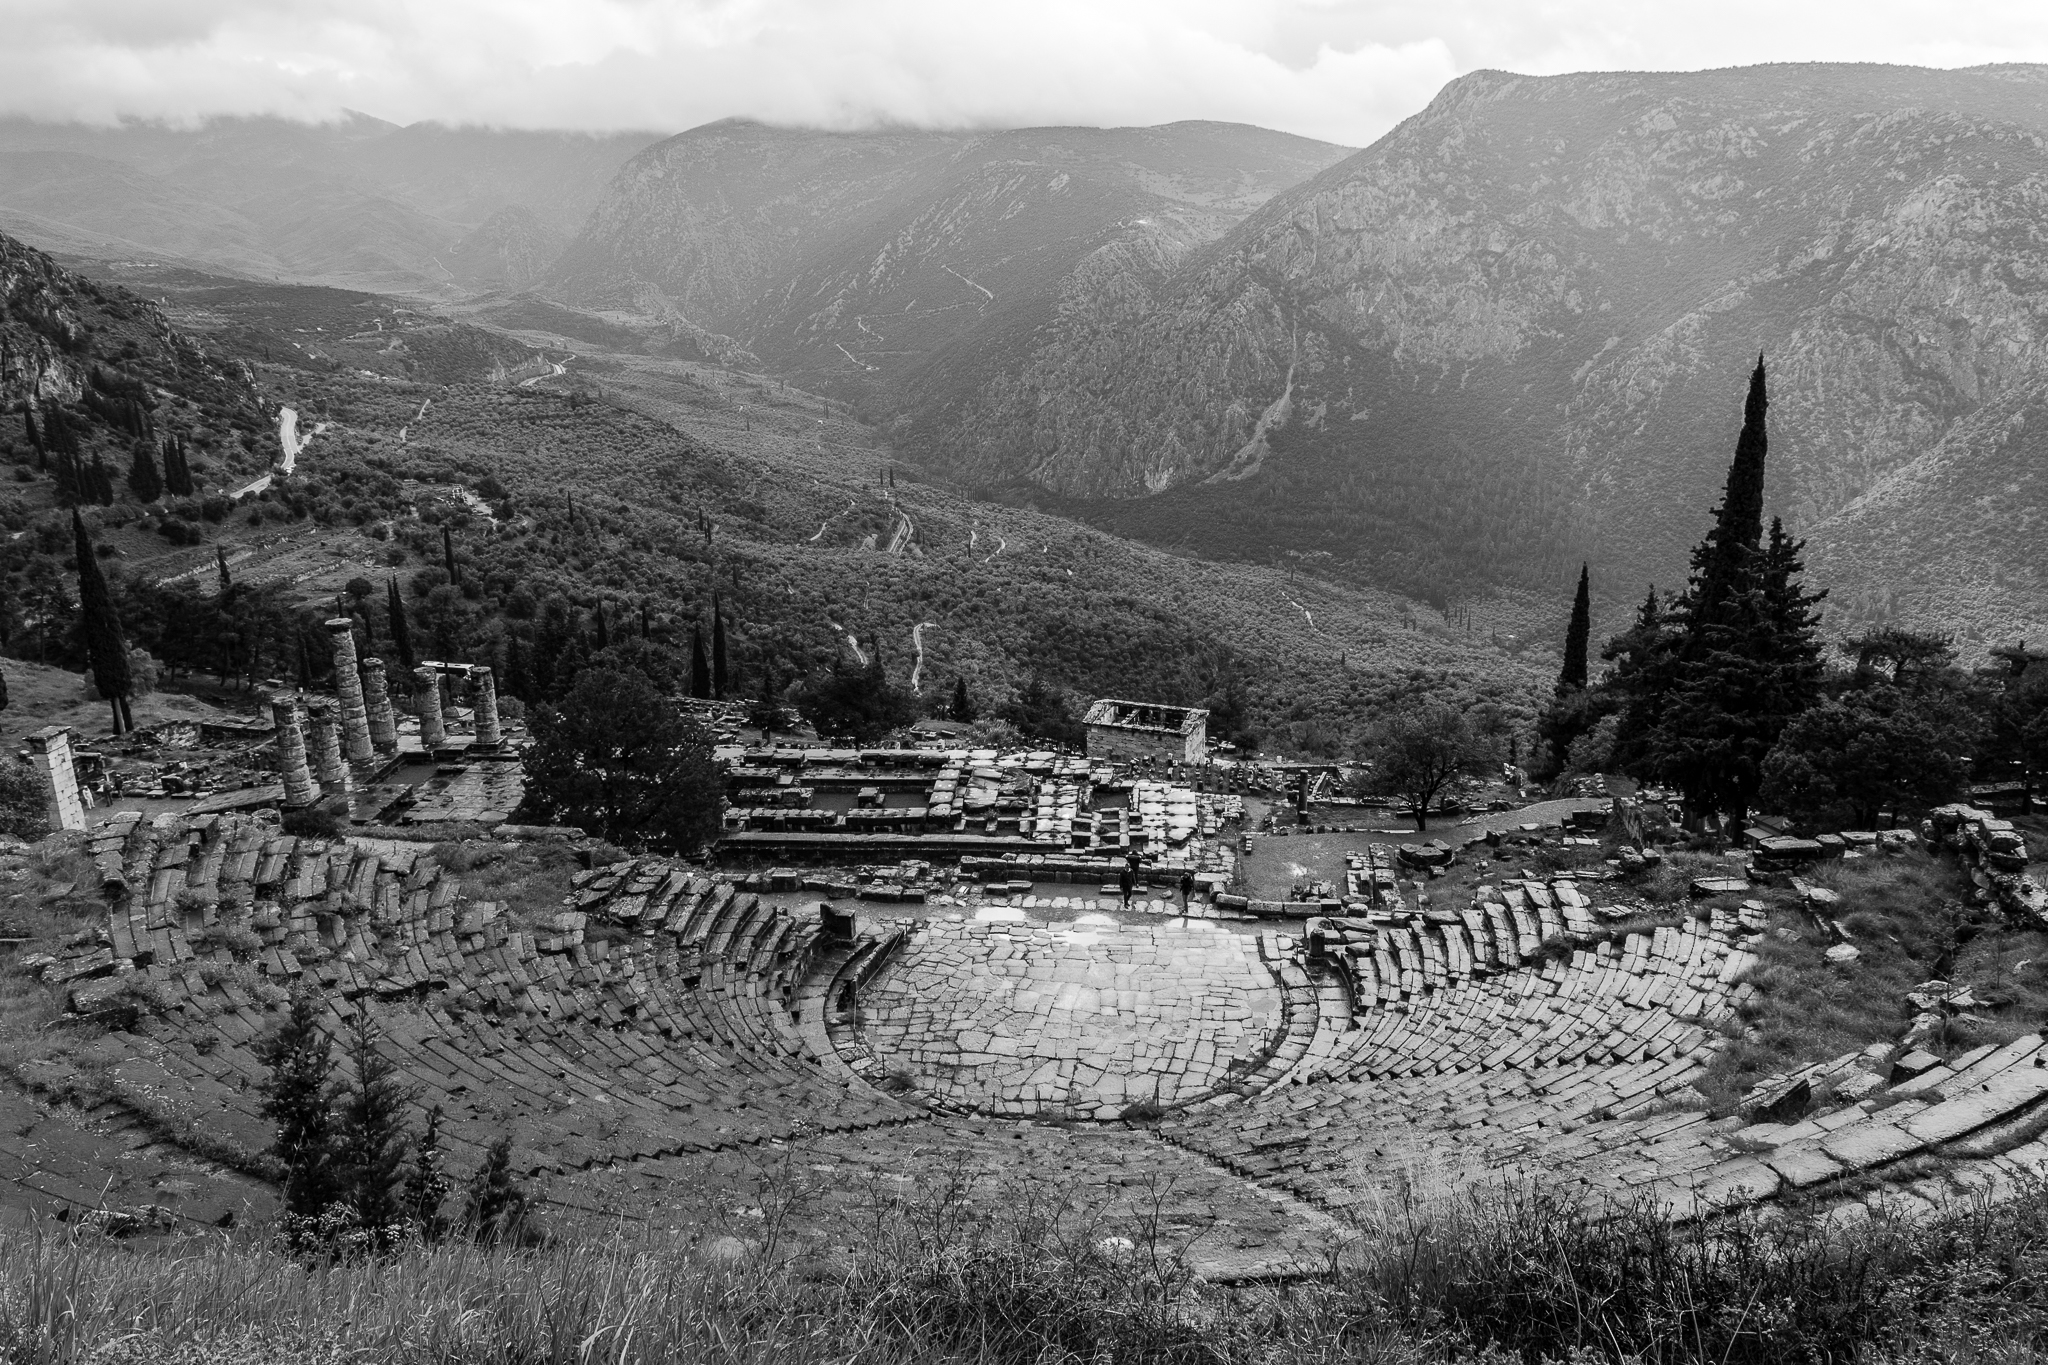 The sanctuary of Delphi lies at the foot of mount Parnassus and is one of the most known oracles of Ancient Greece. It is said that the god Apollo talked through the pious, priestesses of the temple. During the seventh century B.C. it became one of the most important places in the Hellenic world.